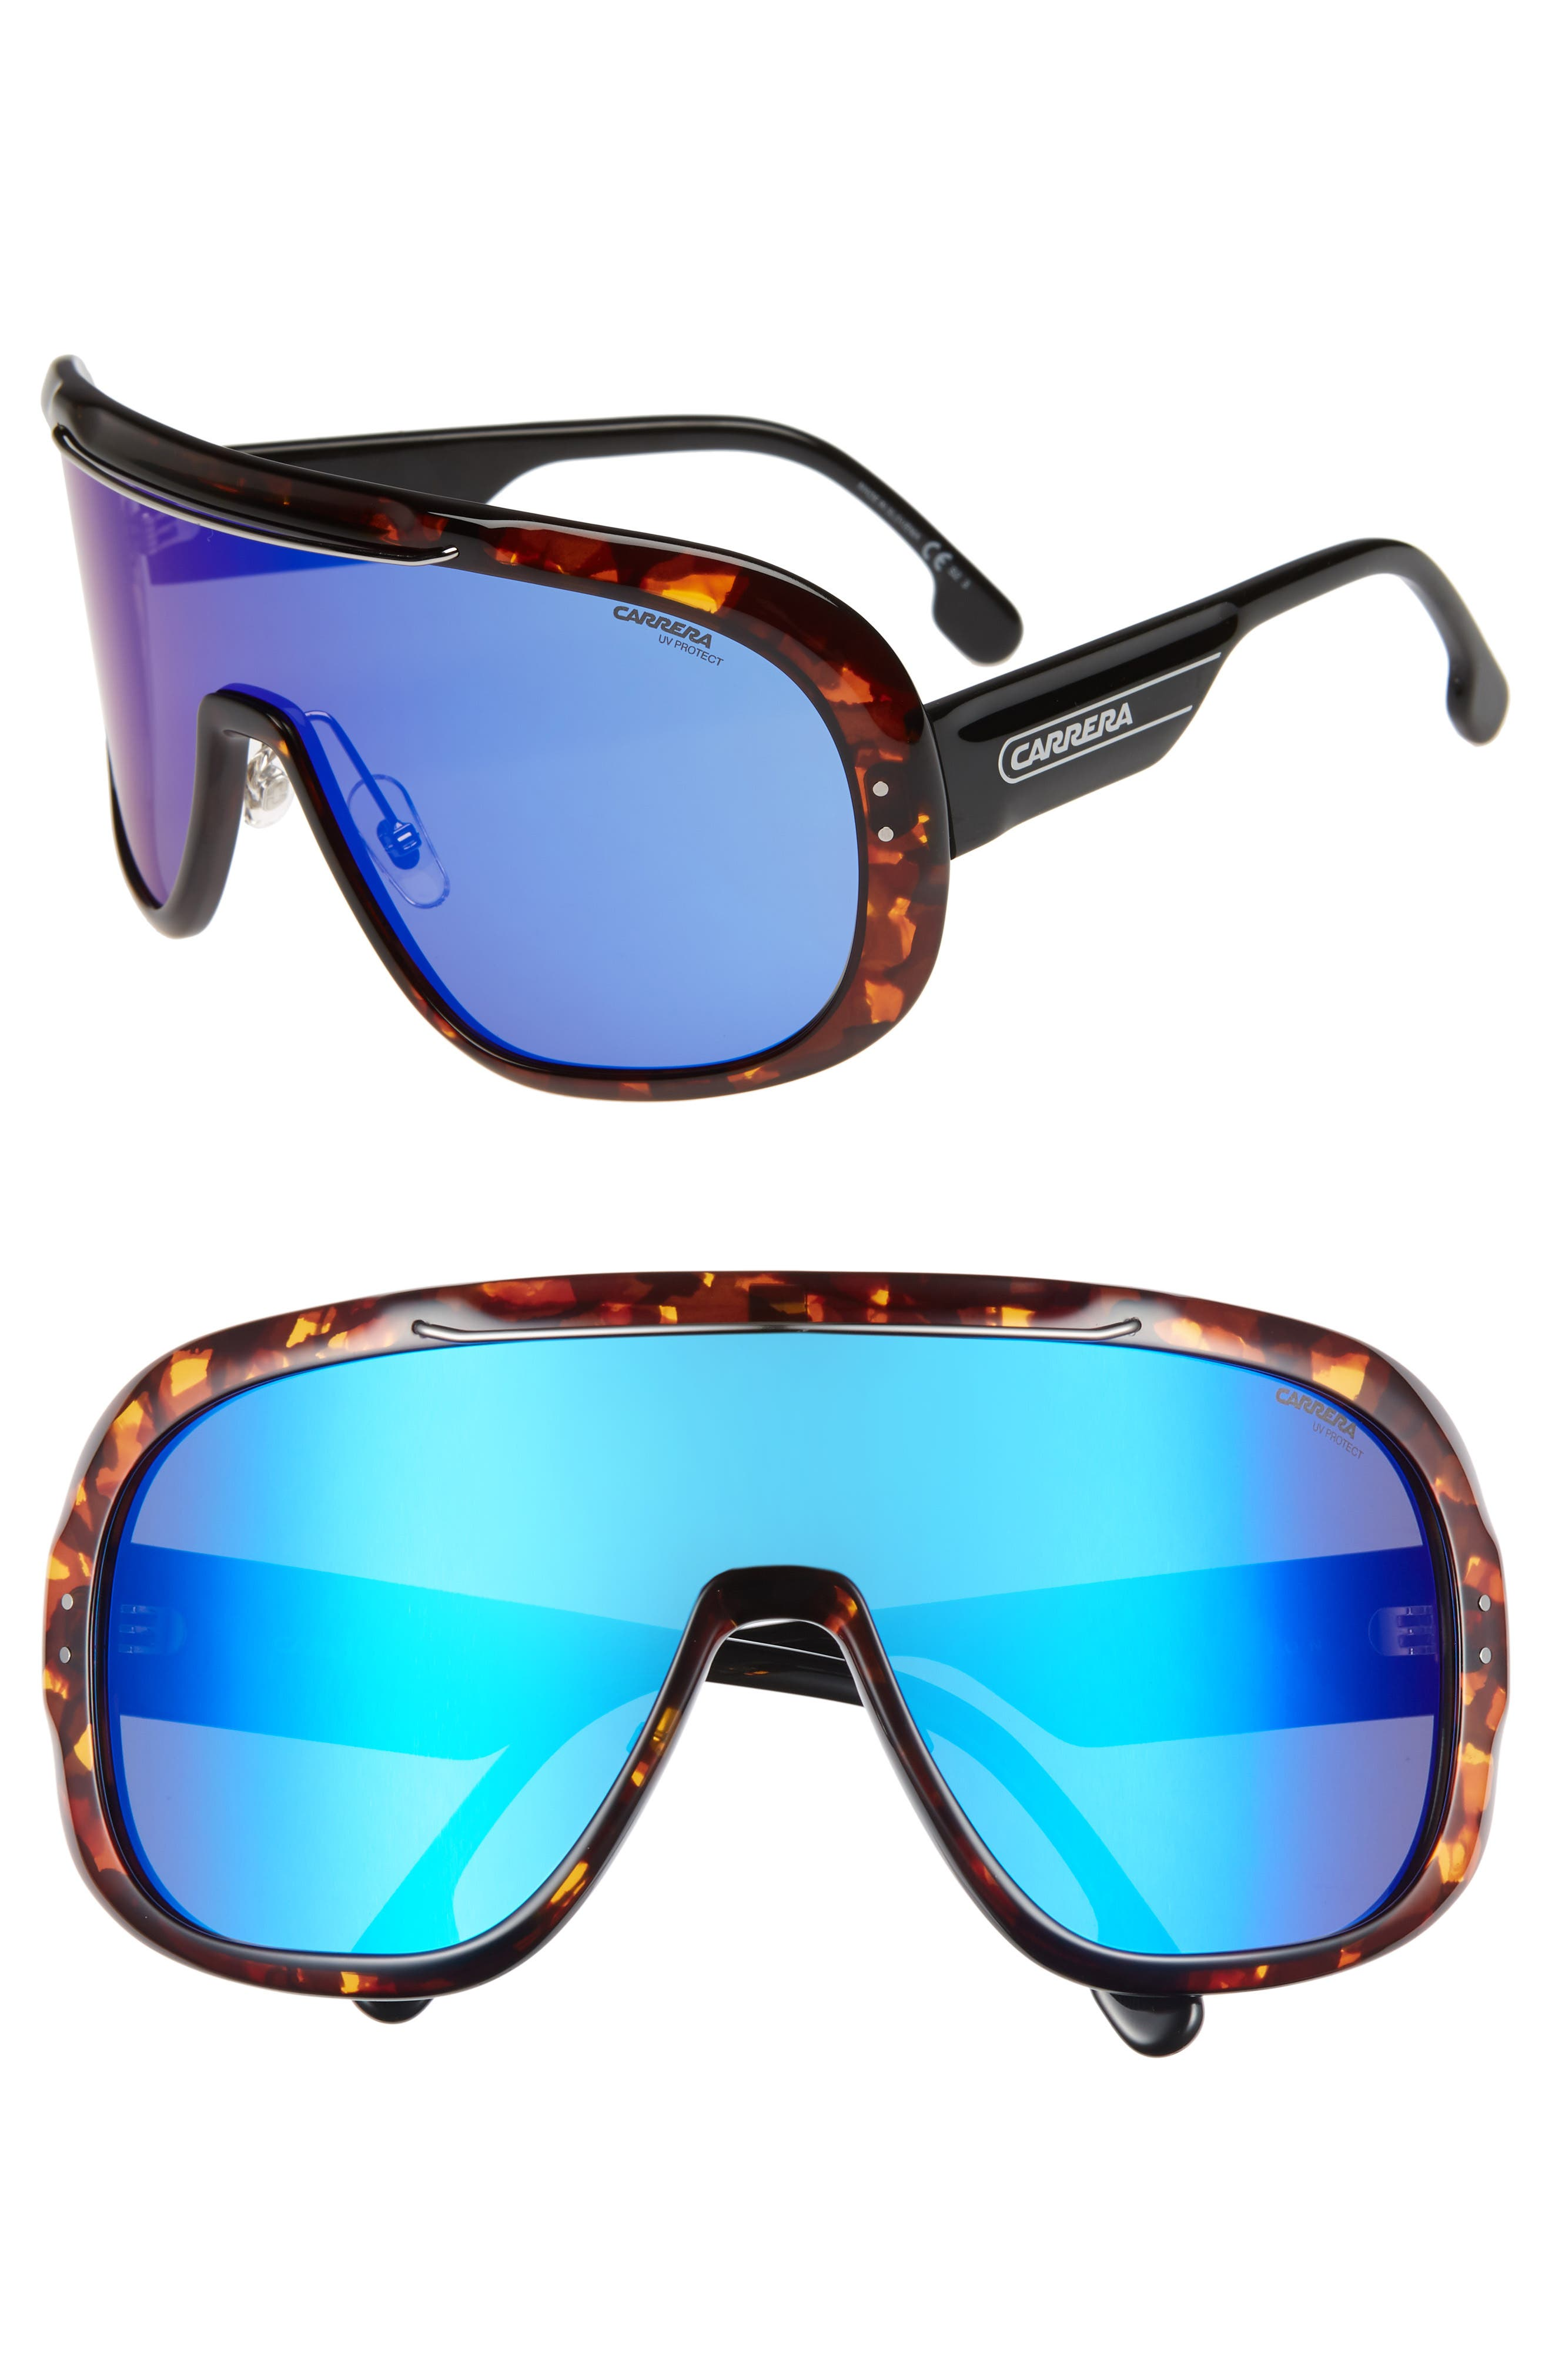 Carrera Eyewear Epica 9m Shield Sunglasses -